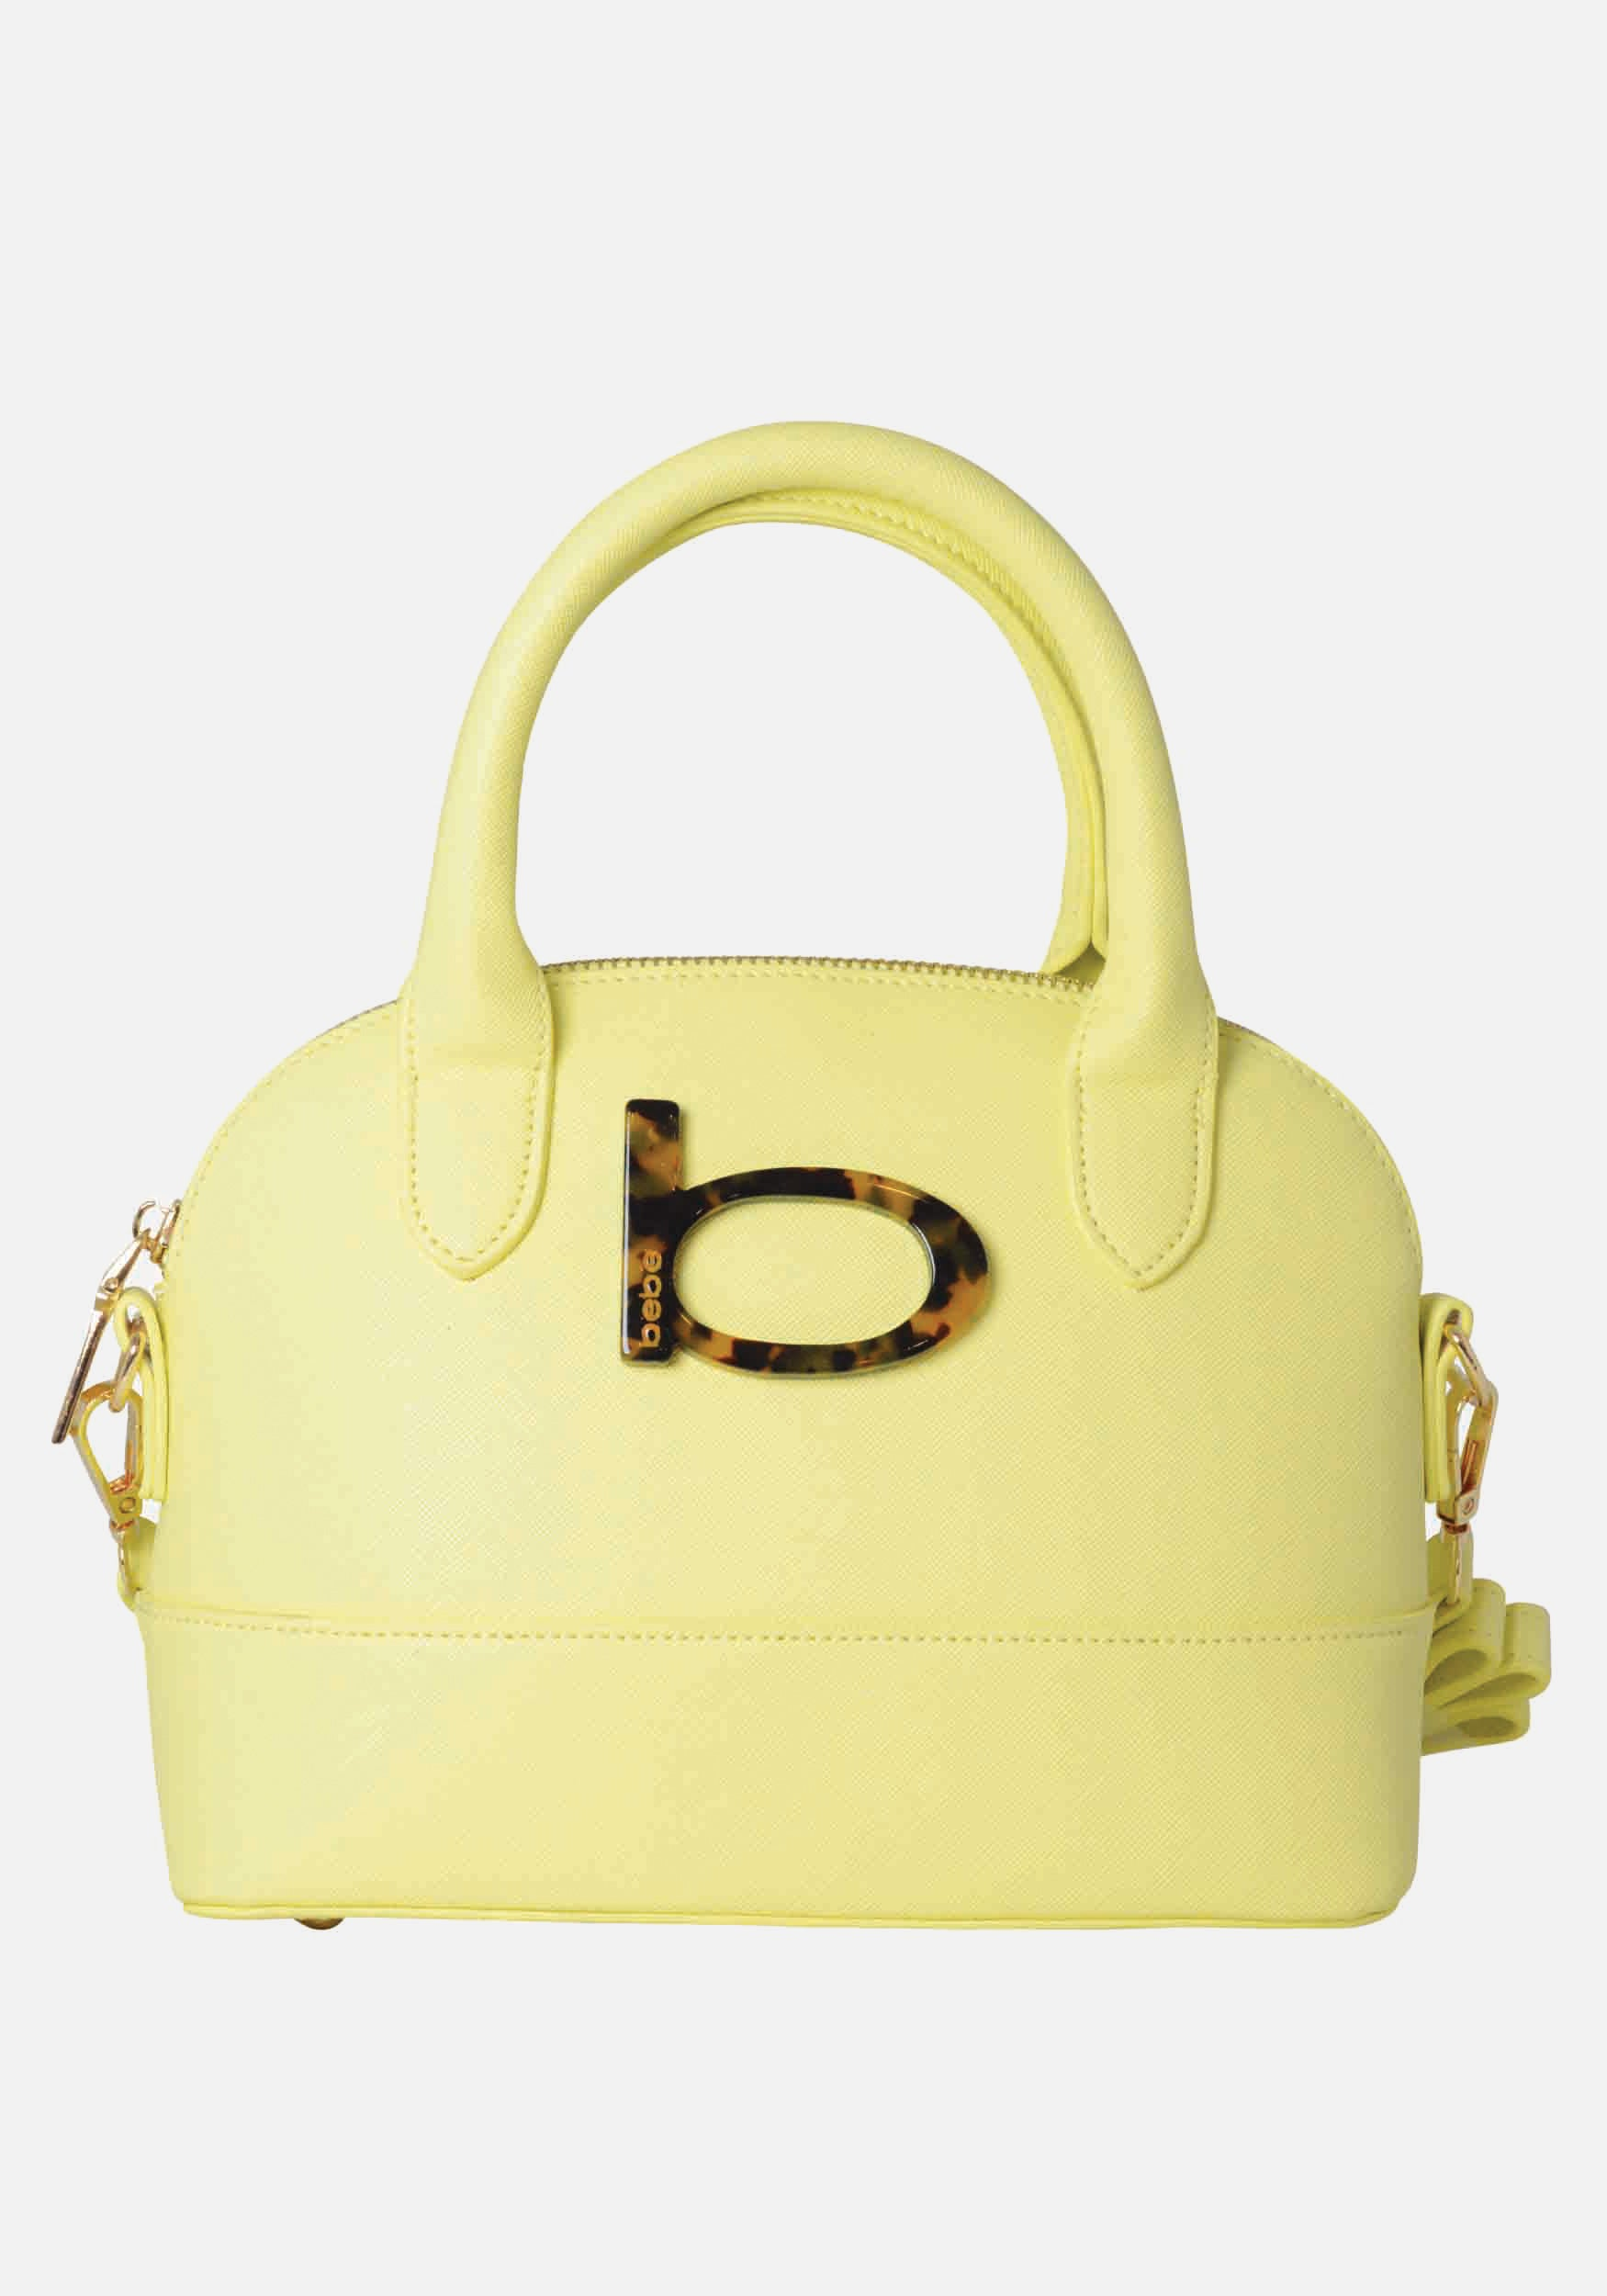 Bebe Women's Emilia Dome Crossbody in Yellow Polyester